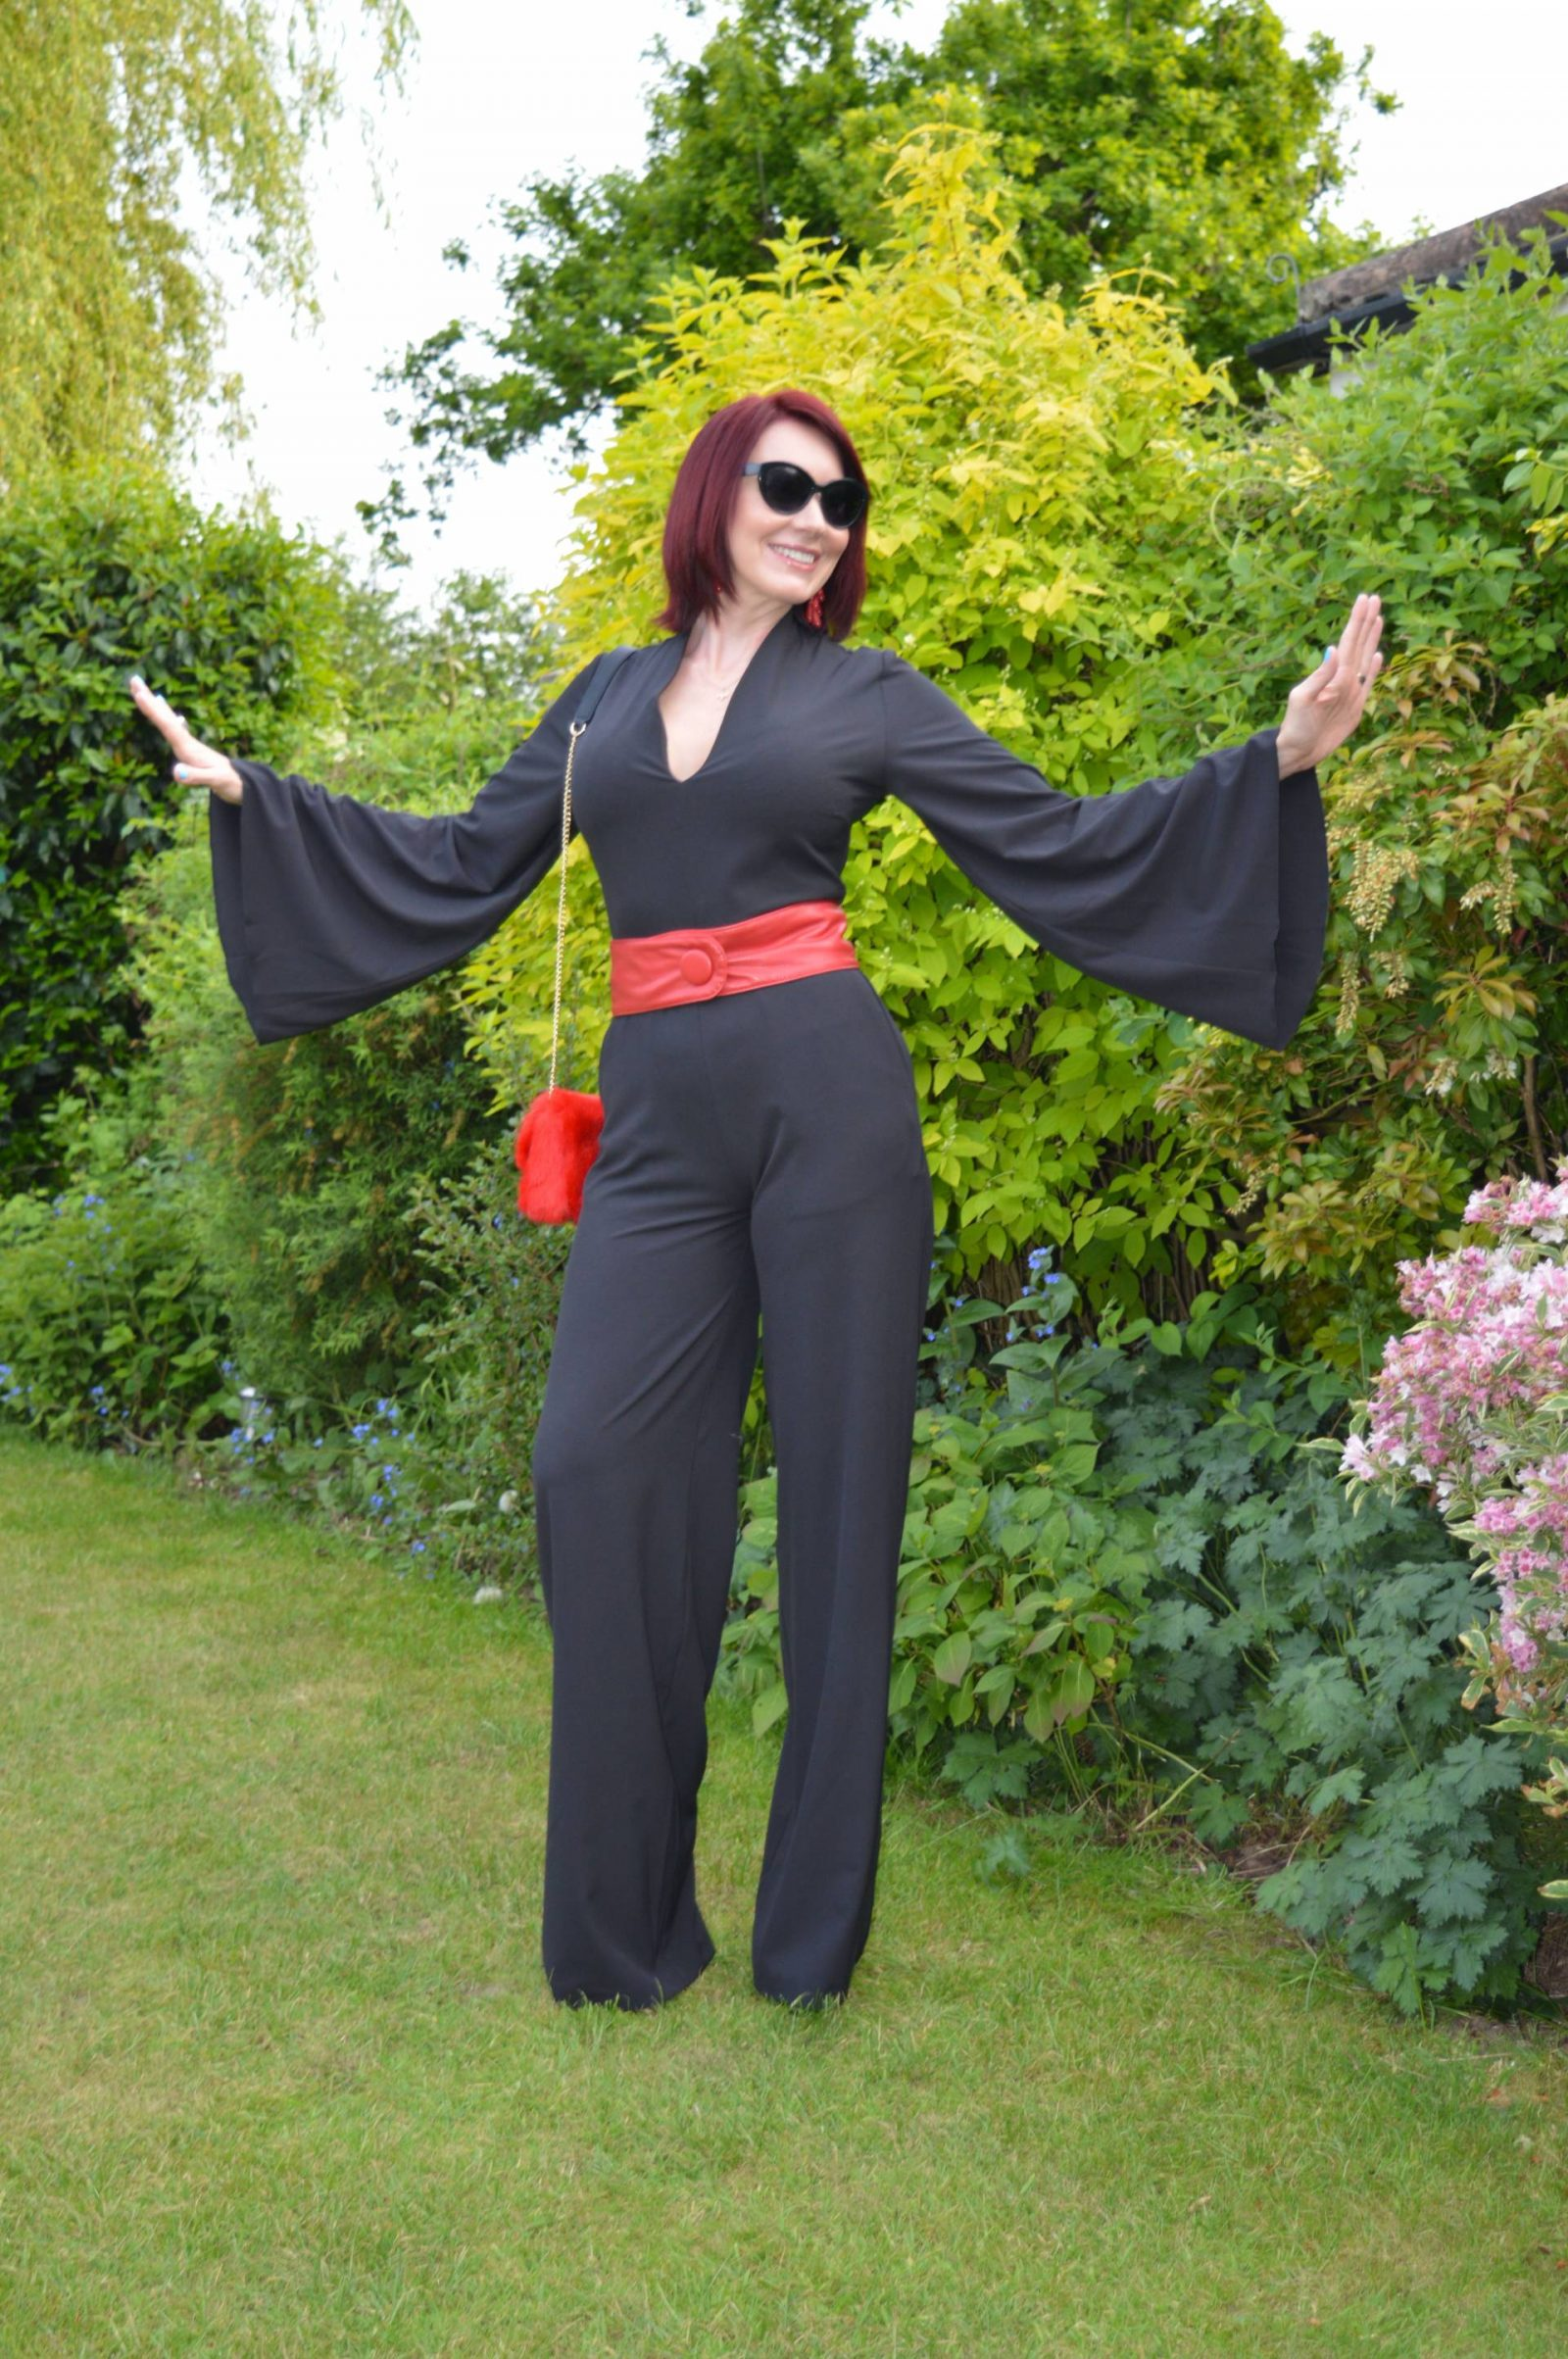 Jumpsuit joy Style Not Age May challenge